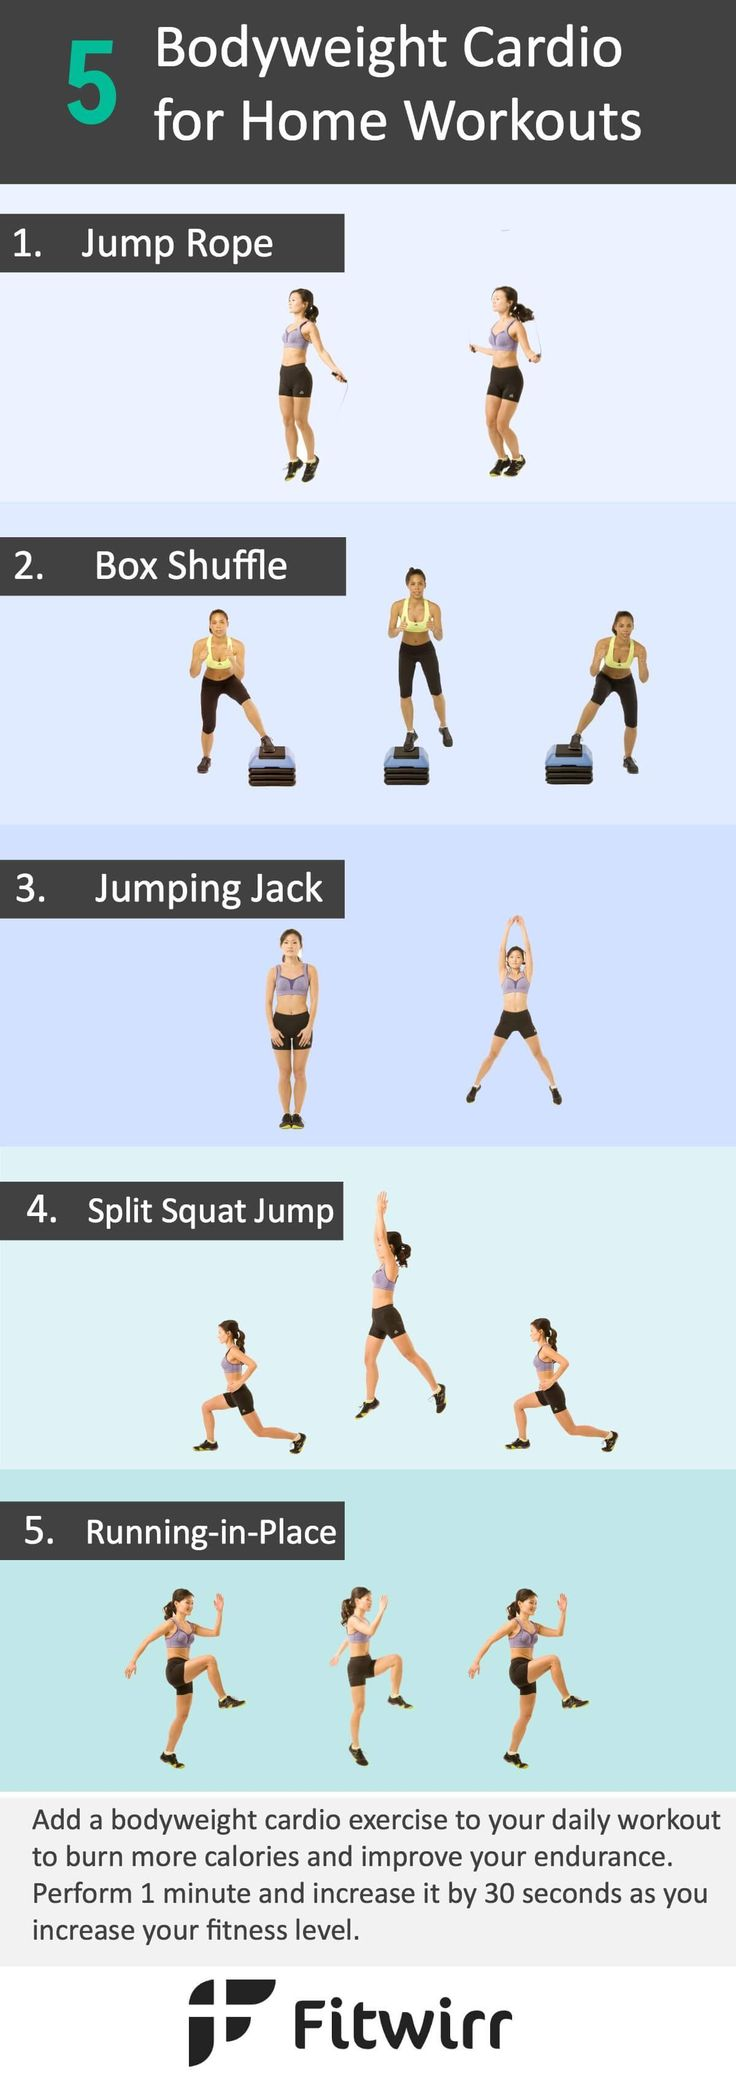 28 best images about Cardio Workouts on Pinterest ...